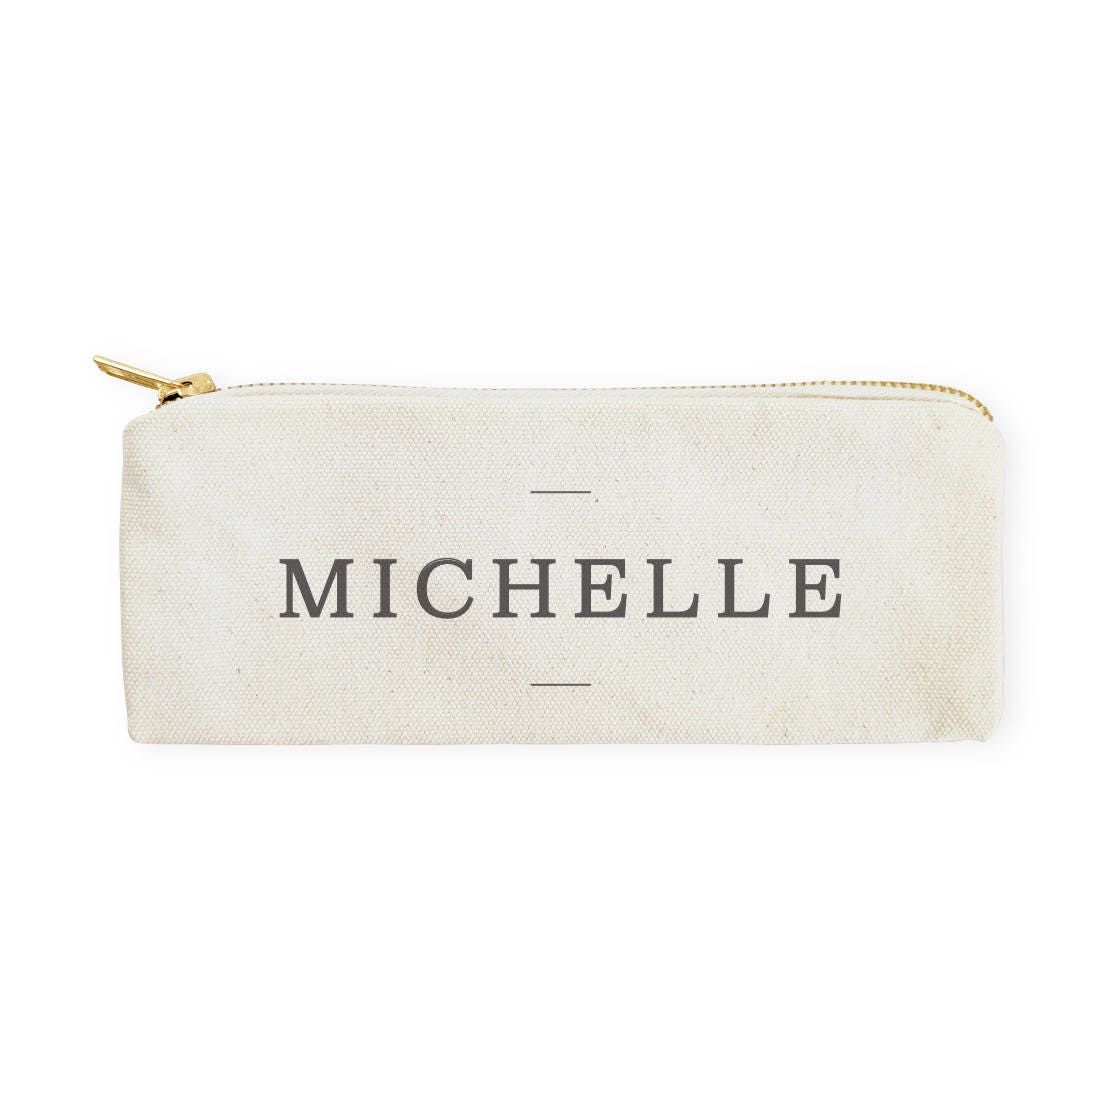 Personalized Modern Name Cotton Canvas Pencil Case and Travel Pouch for Back to School, Supplies, Gift for Her, Makeup Bag and Pouch, DIY